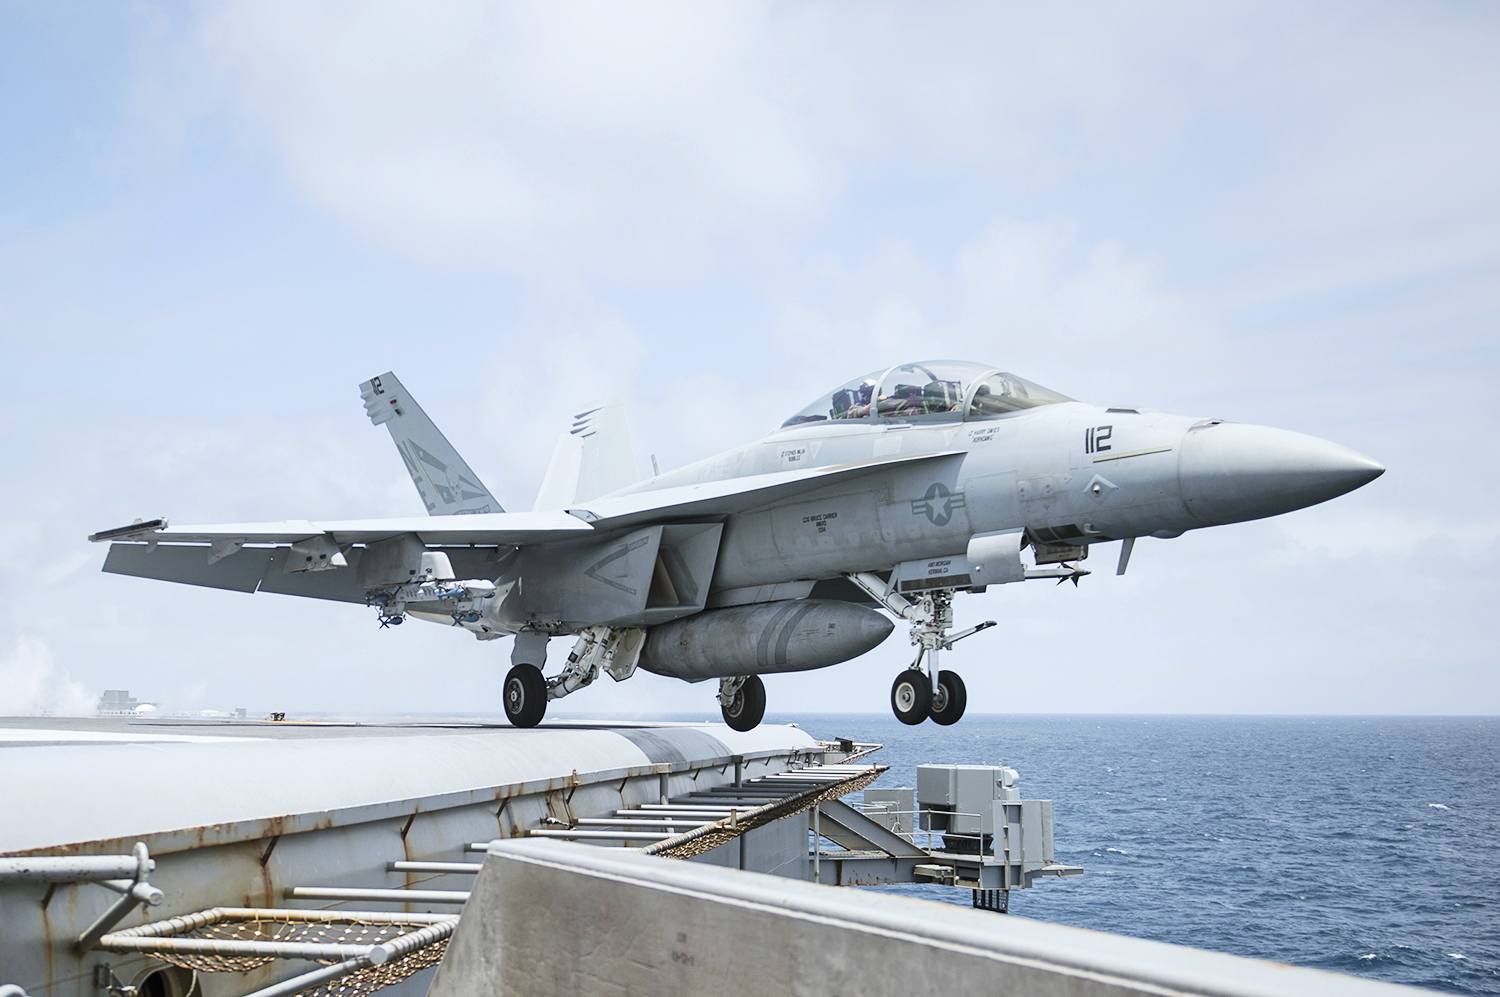 150926-N-YB023-085 PACIFIC OCEAN (Sept. 26, 2015) An F/A-18F Super Hornet from the Bounty Hunters of Strike Fighter Squadron (VFA) 2 launches from the flight deck of the aircraft carrier USS George Washington (CVN 73). George Washington is preparing to deploy around South America as a part of Southern Seas 2015. The eighth deployment of its kind, Southern Seas seeks to enhance interoperability, increase regional stability, and build and maintain regional relationships with countries throughout the region through joint multinational and interagency exchanges and cooperation. (U.S. Navy photo by Mass Communication Specialist Seaman Clemente A. Lynch/Released)